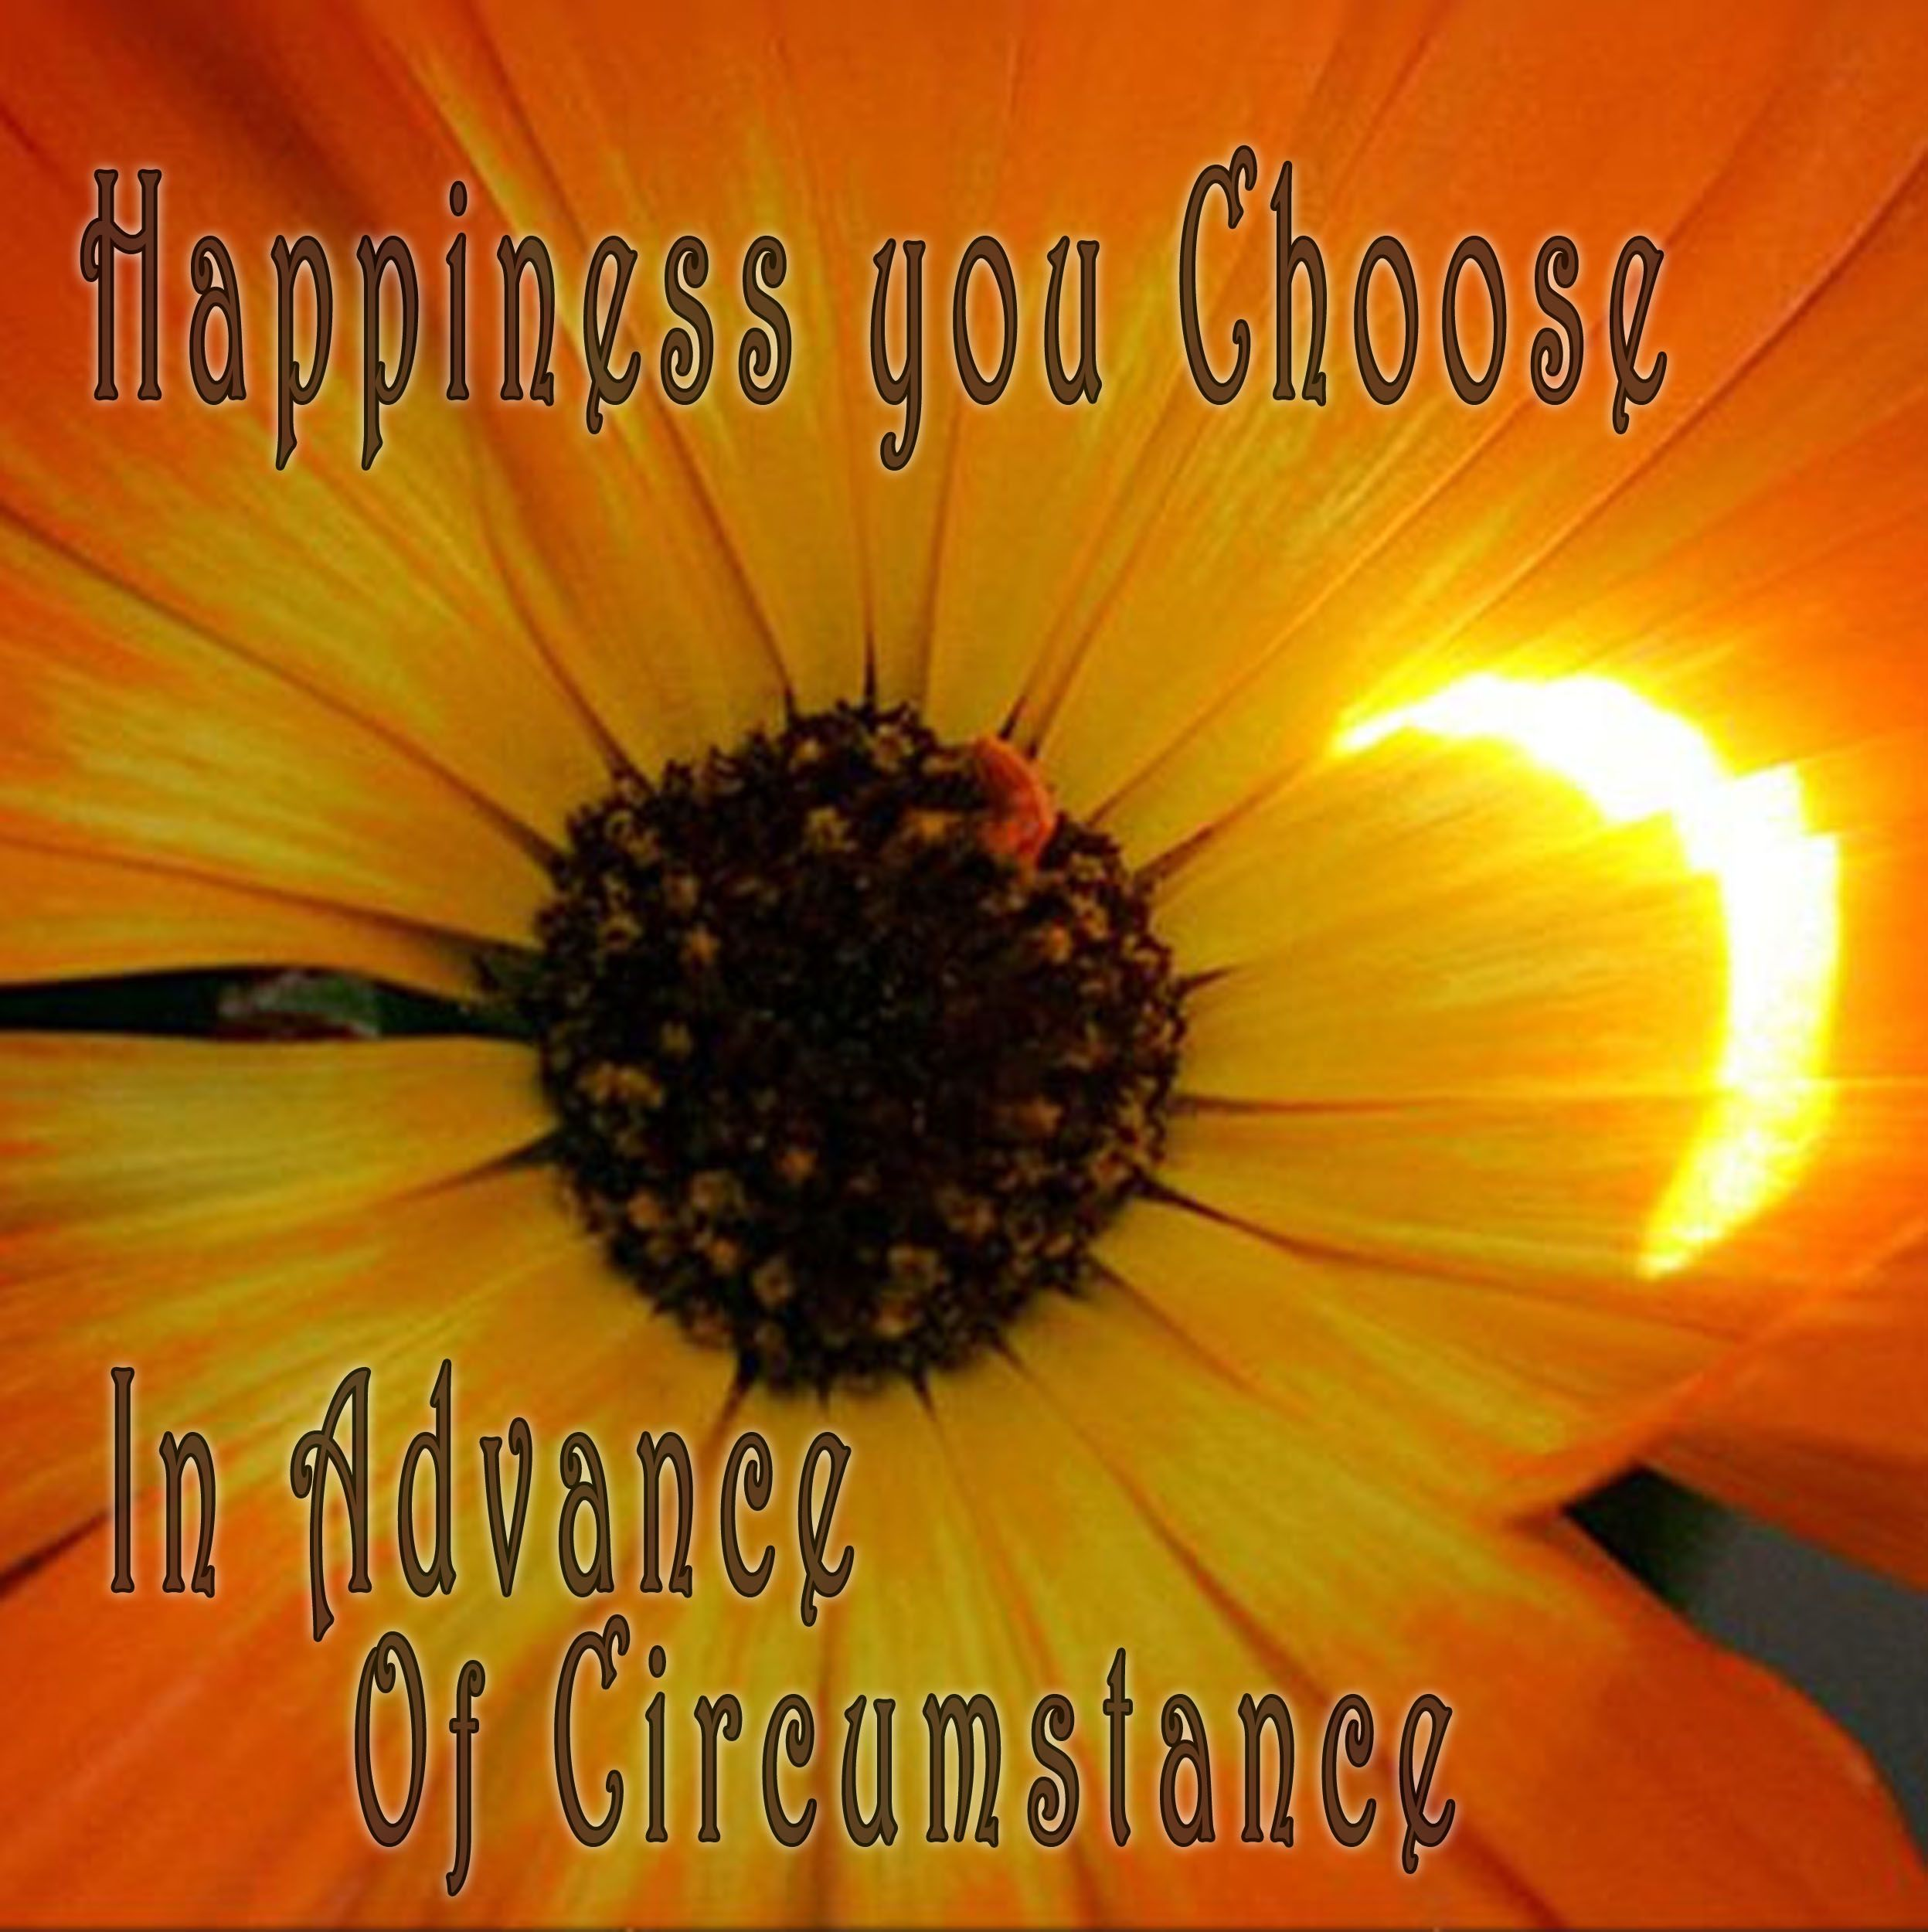 """""""Happiness you choose in advance of circumstance.""""  I've always loved this saying, now I realize this is essentially a Buddhist truth.  I want happiness is yours when you remove I and want!"""